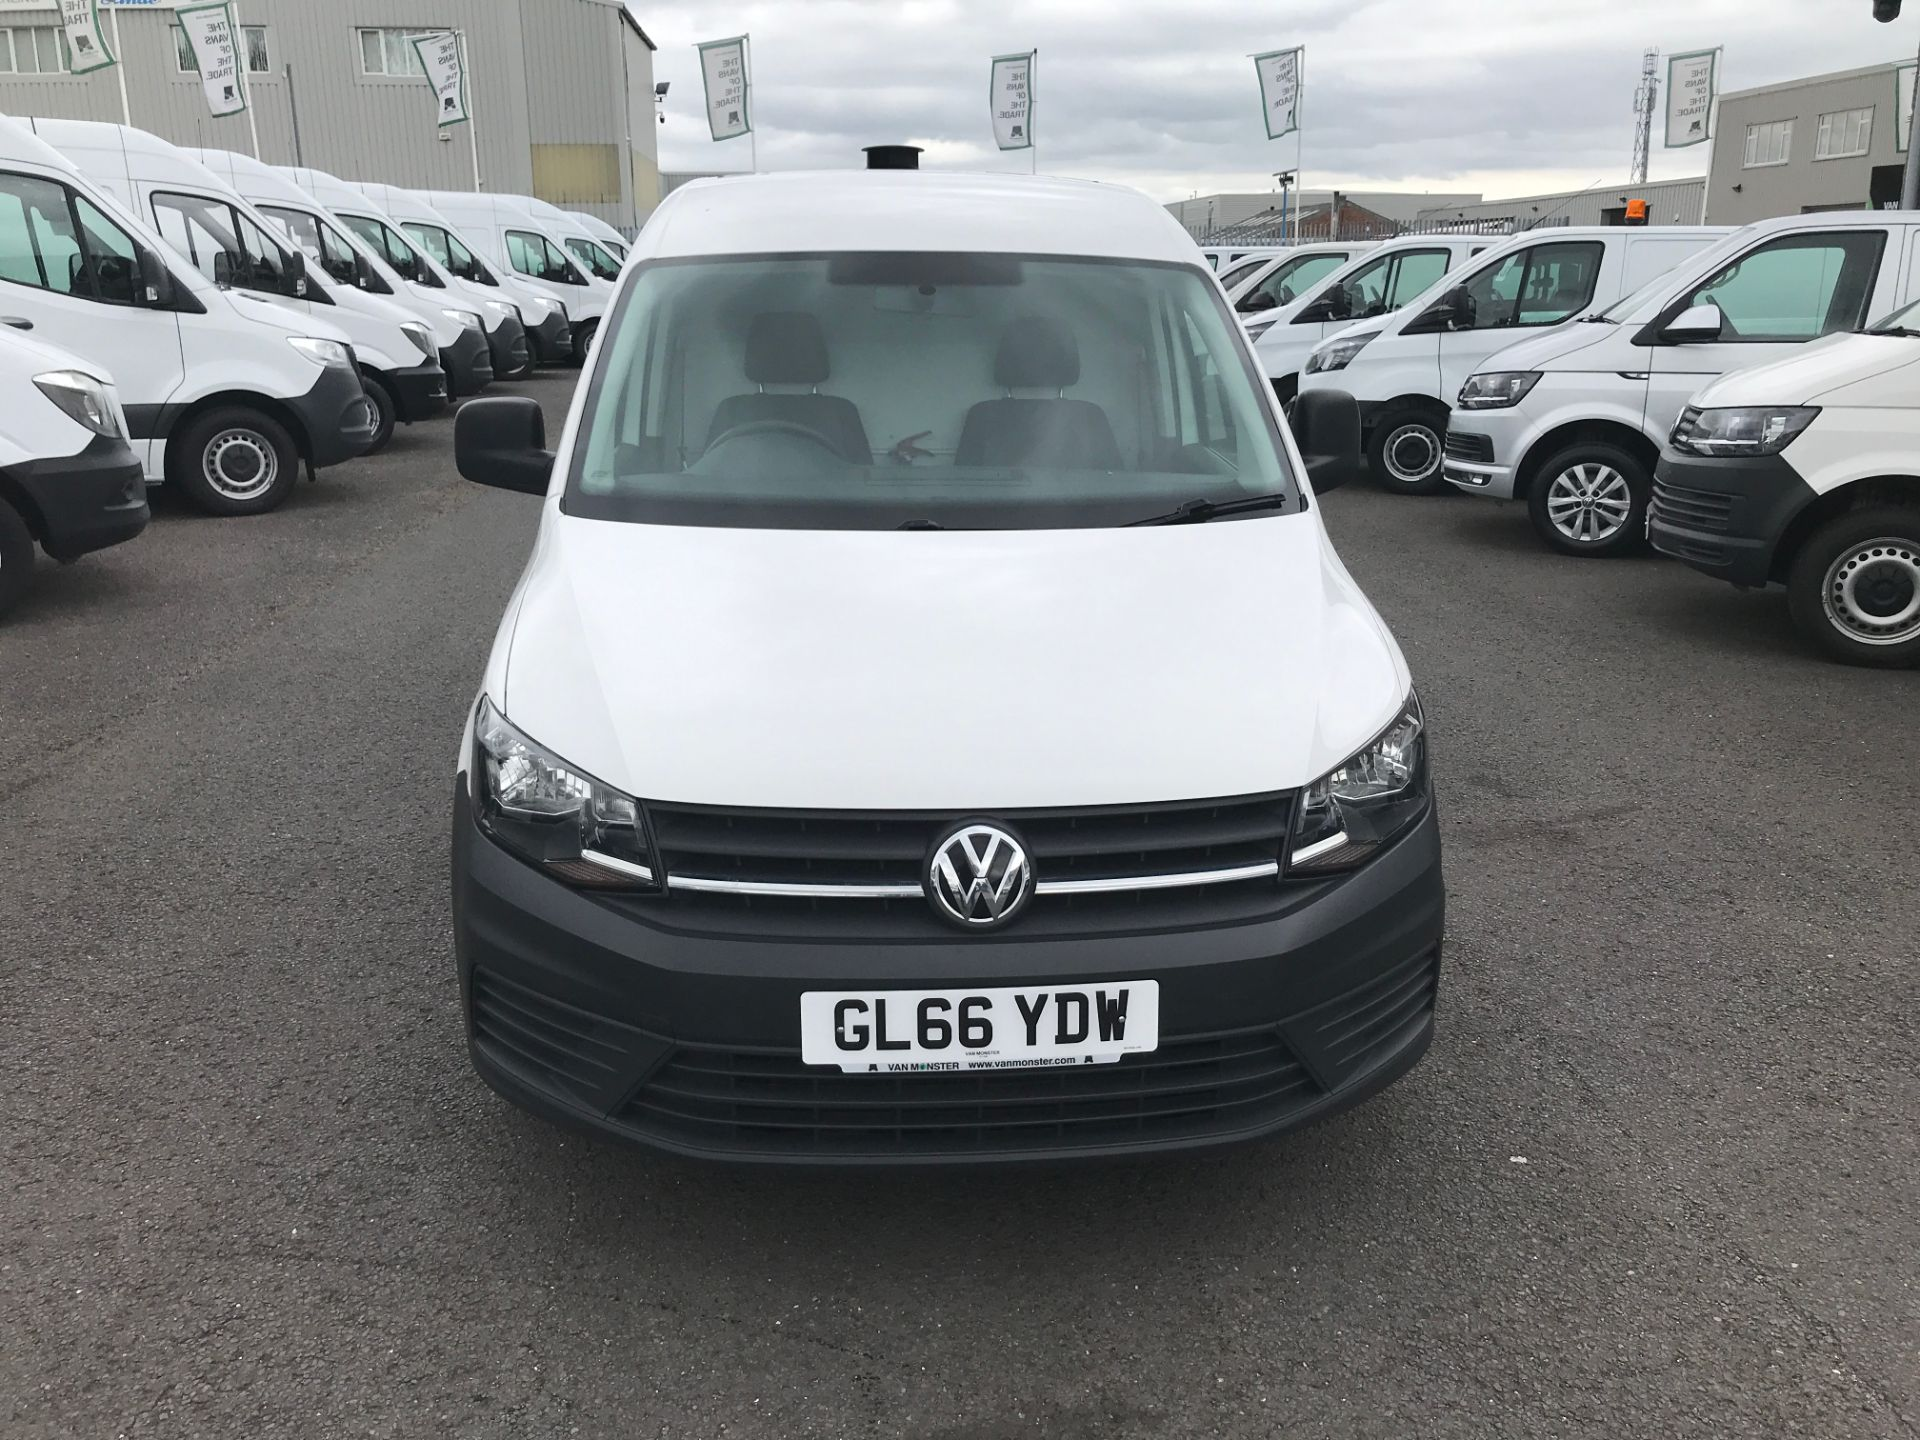 2016 Volkswagen Caddy 2.0TDI BLUEMOTION TECH 102PS STARTLINE EURO 6 (GL66YDW) Image 2